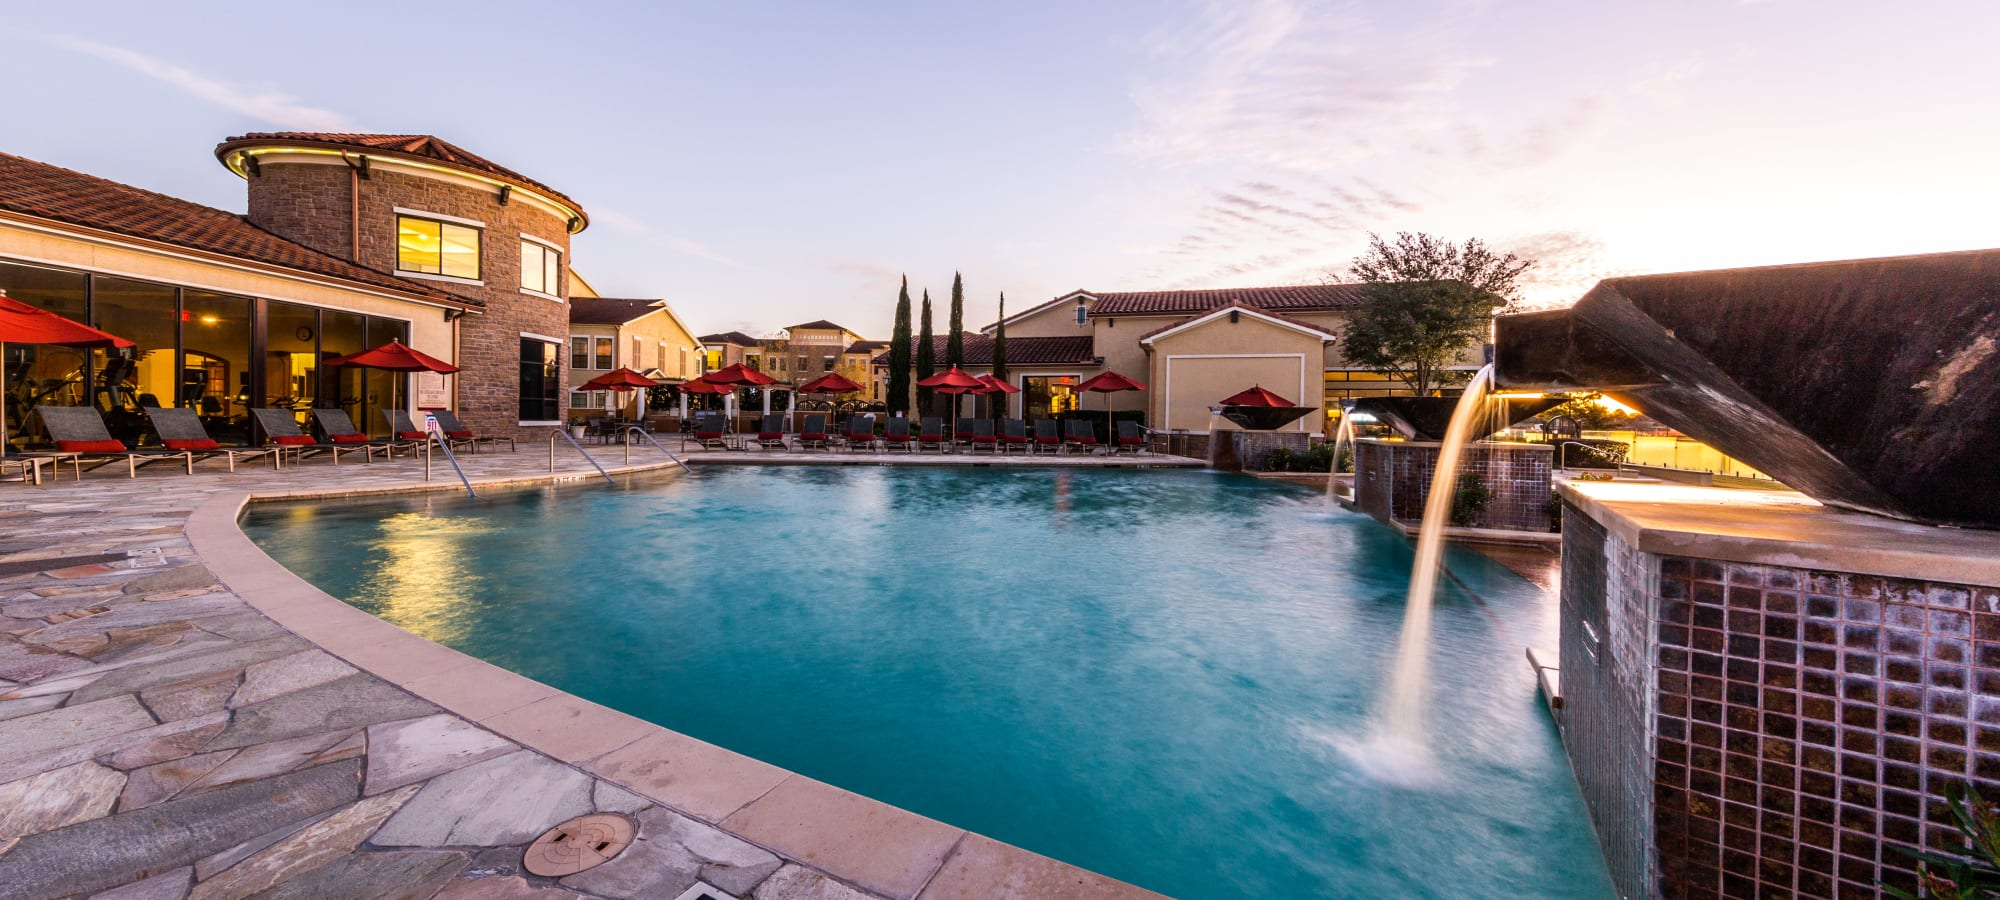 Apartments at Marquis at the Reserve in Katy, Texas